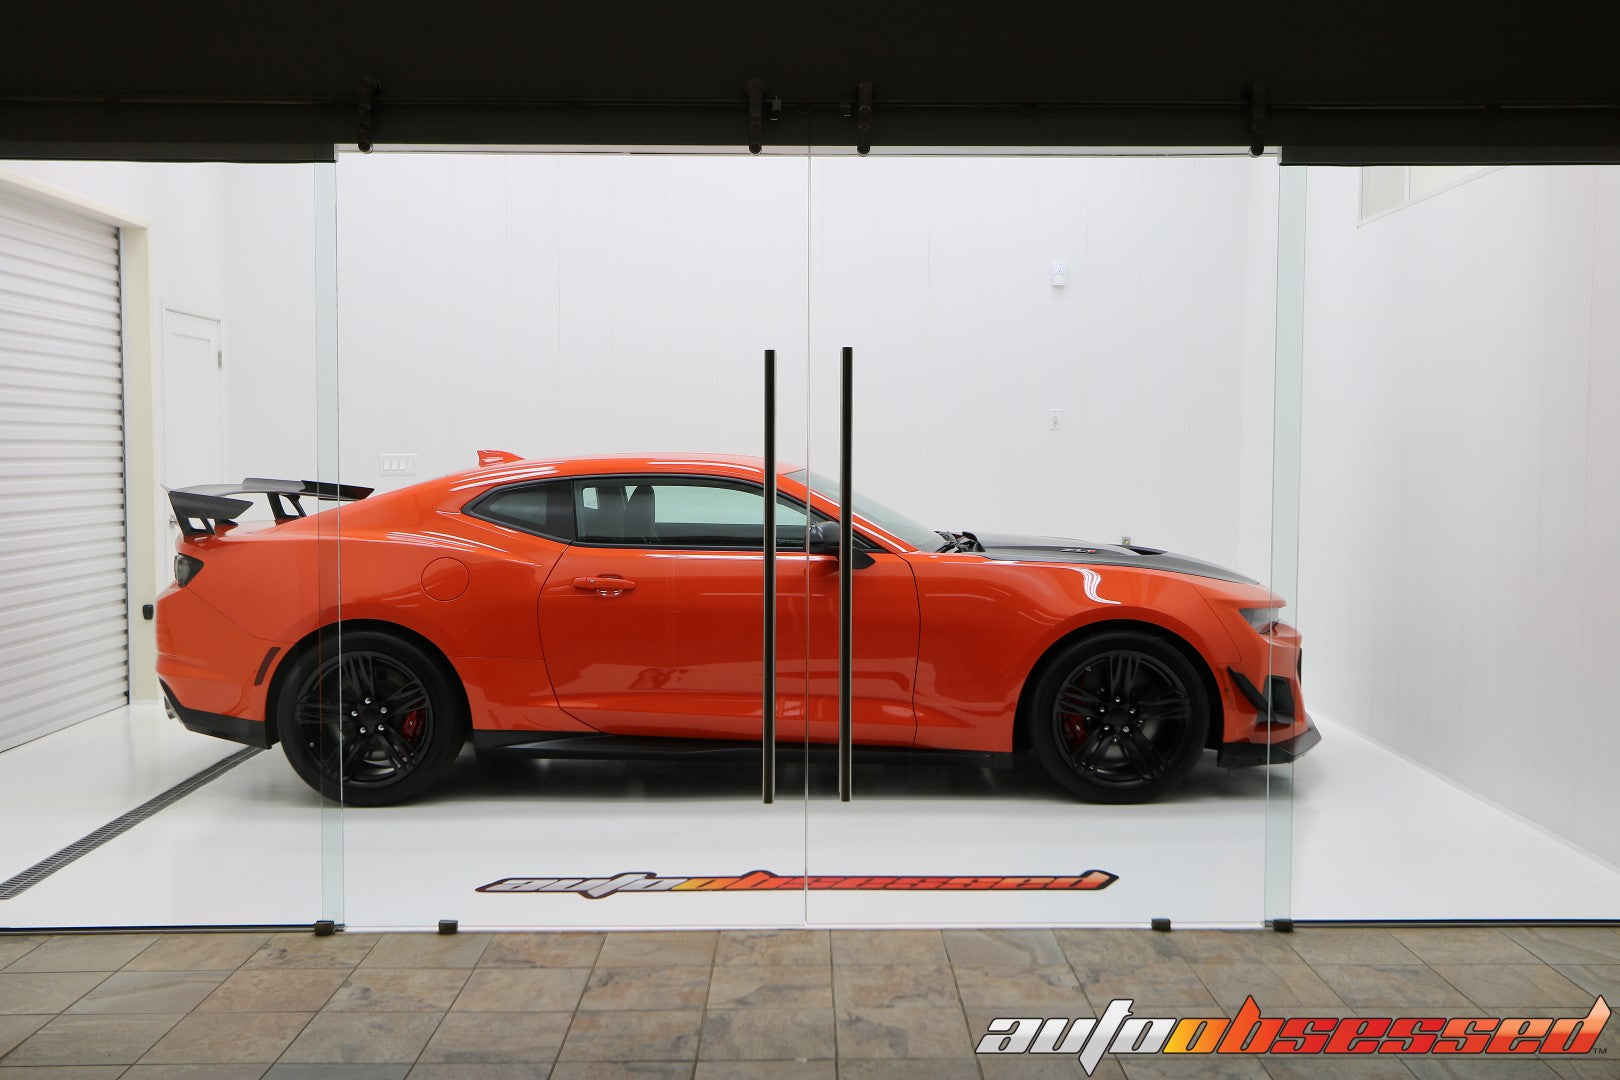 2020 Camaro ZL1 1ZE Track Edition New Vehicle Car Detailing - Auto Obsessed